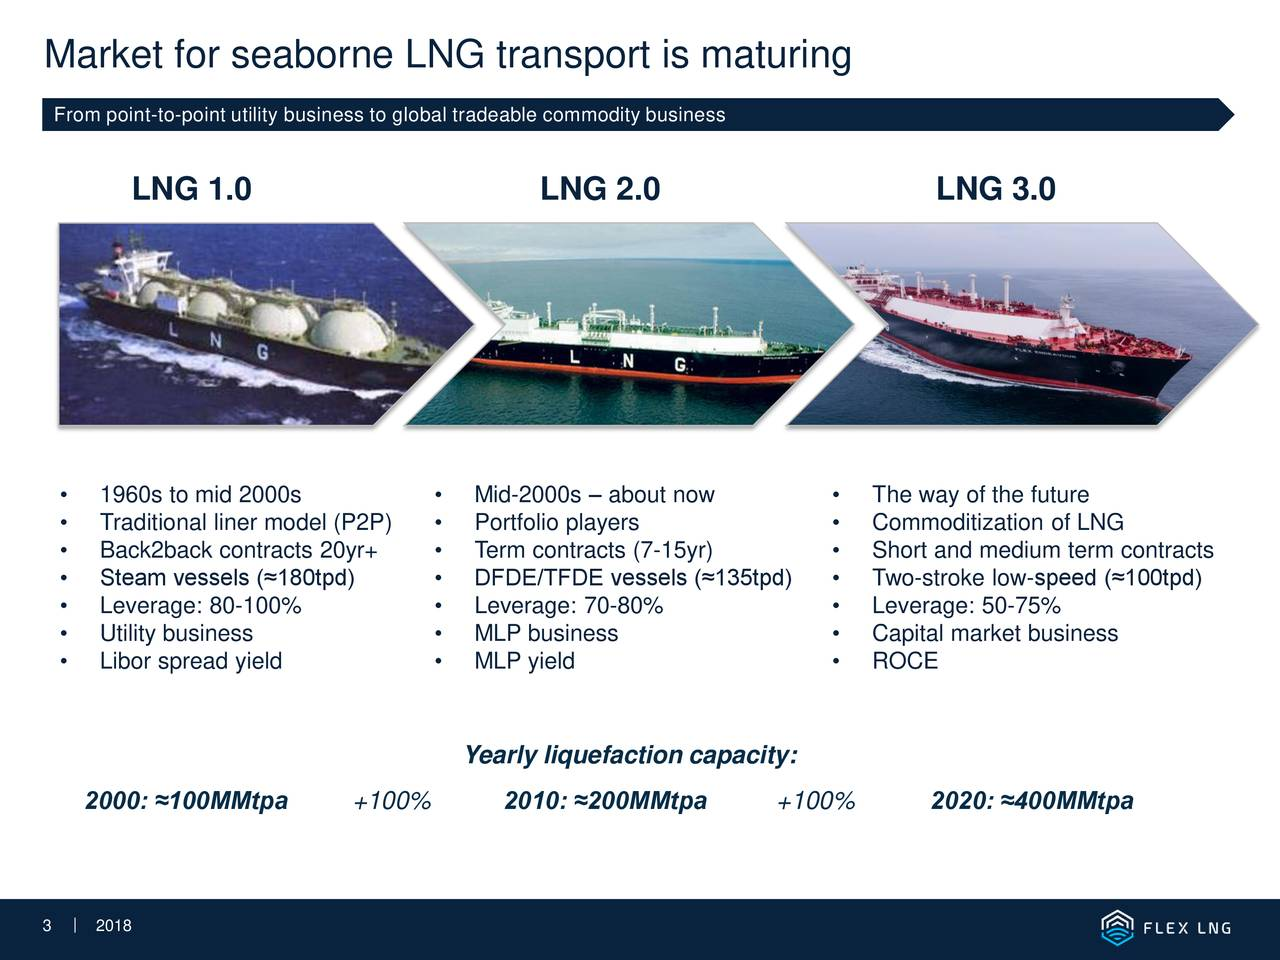 From point-to-point utility business to global tradeable commodity business LNG 1.0 LNG 2.0 LNG 3.0 • 1960s to mid 2000s • Mid-2000s – about now • The way of the future • Traditional liner model (P2P) • Portfolio players • Commoditization of LNG • Back2back contracts 20yr+ • Term contracts (7-15yr) • Short and medium term contracts • Steam vessels (≈180tpd) • DFDE/TFDE vessels (≈135tpd) • Two-stroke low-speed (≈100tpd) • Leverage: 80-100% • Leverage: 70-80% • Leverage: 50-75% • Utility business • MLP business • Capital market business • Libor spread yield • MLP yield • ROCE Yearly liquefaction capacity: 2000: ≈100MMtpa +100% 2010: ≈200MMtpa +100% 2020: ≈400MMtpa 33 |22018